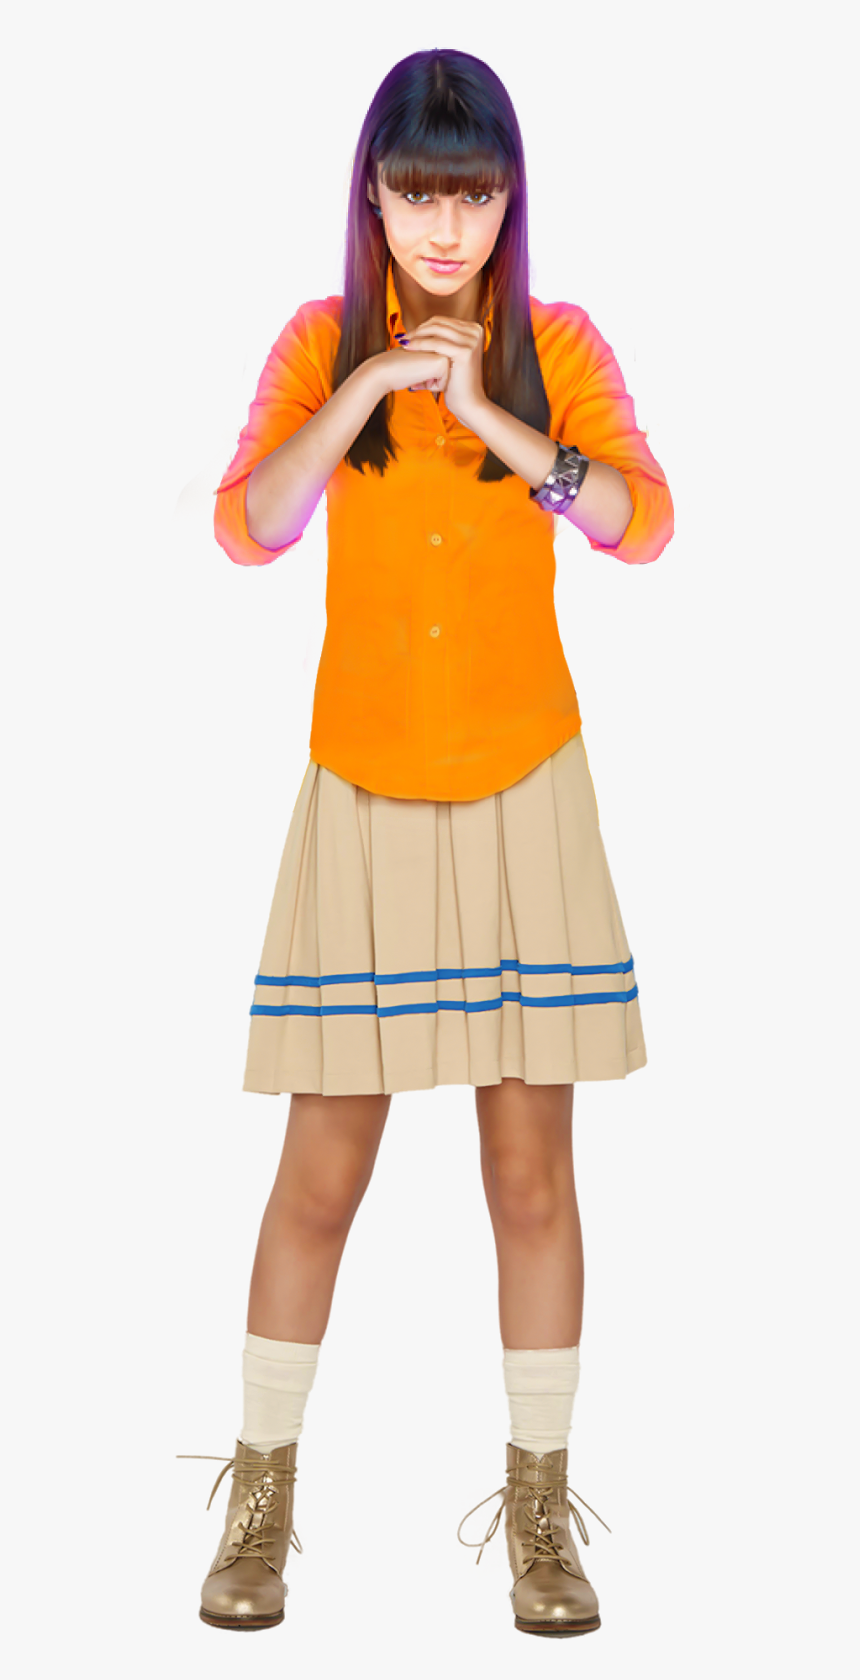 Mia Season 3 Png, Transparent Png, Free Download